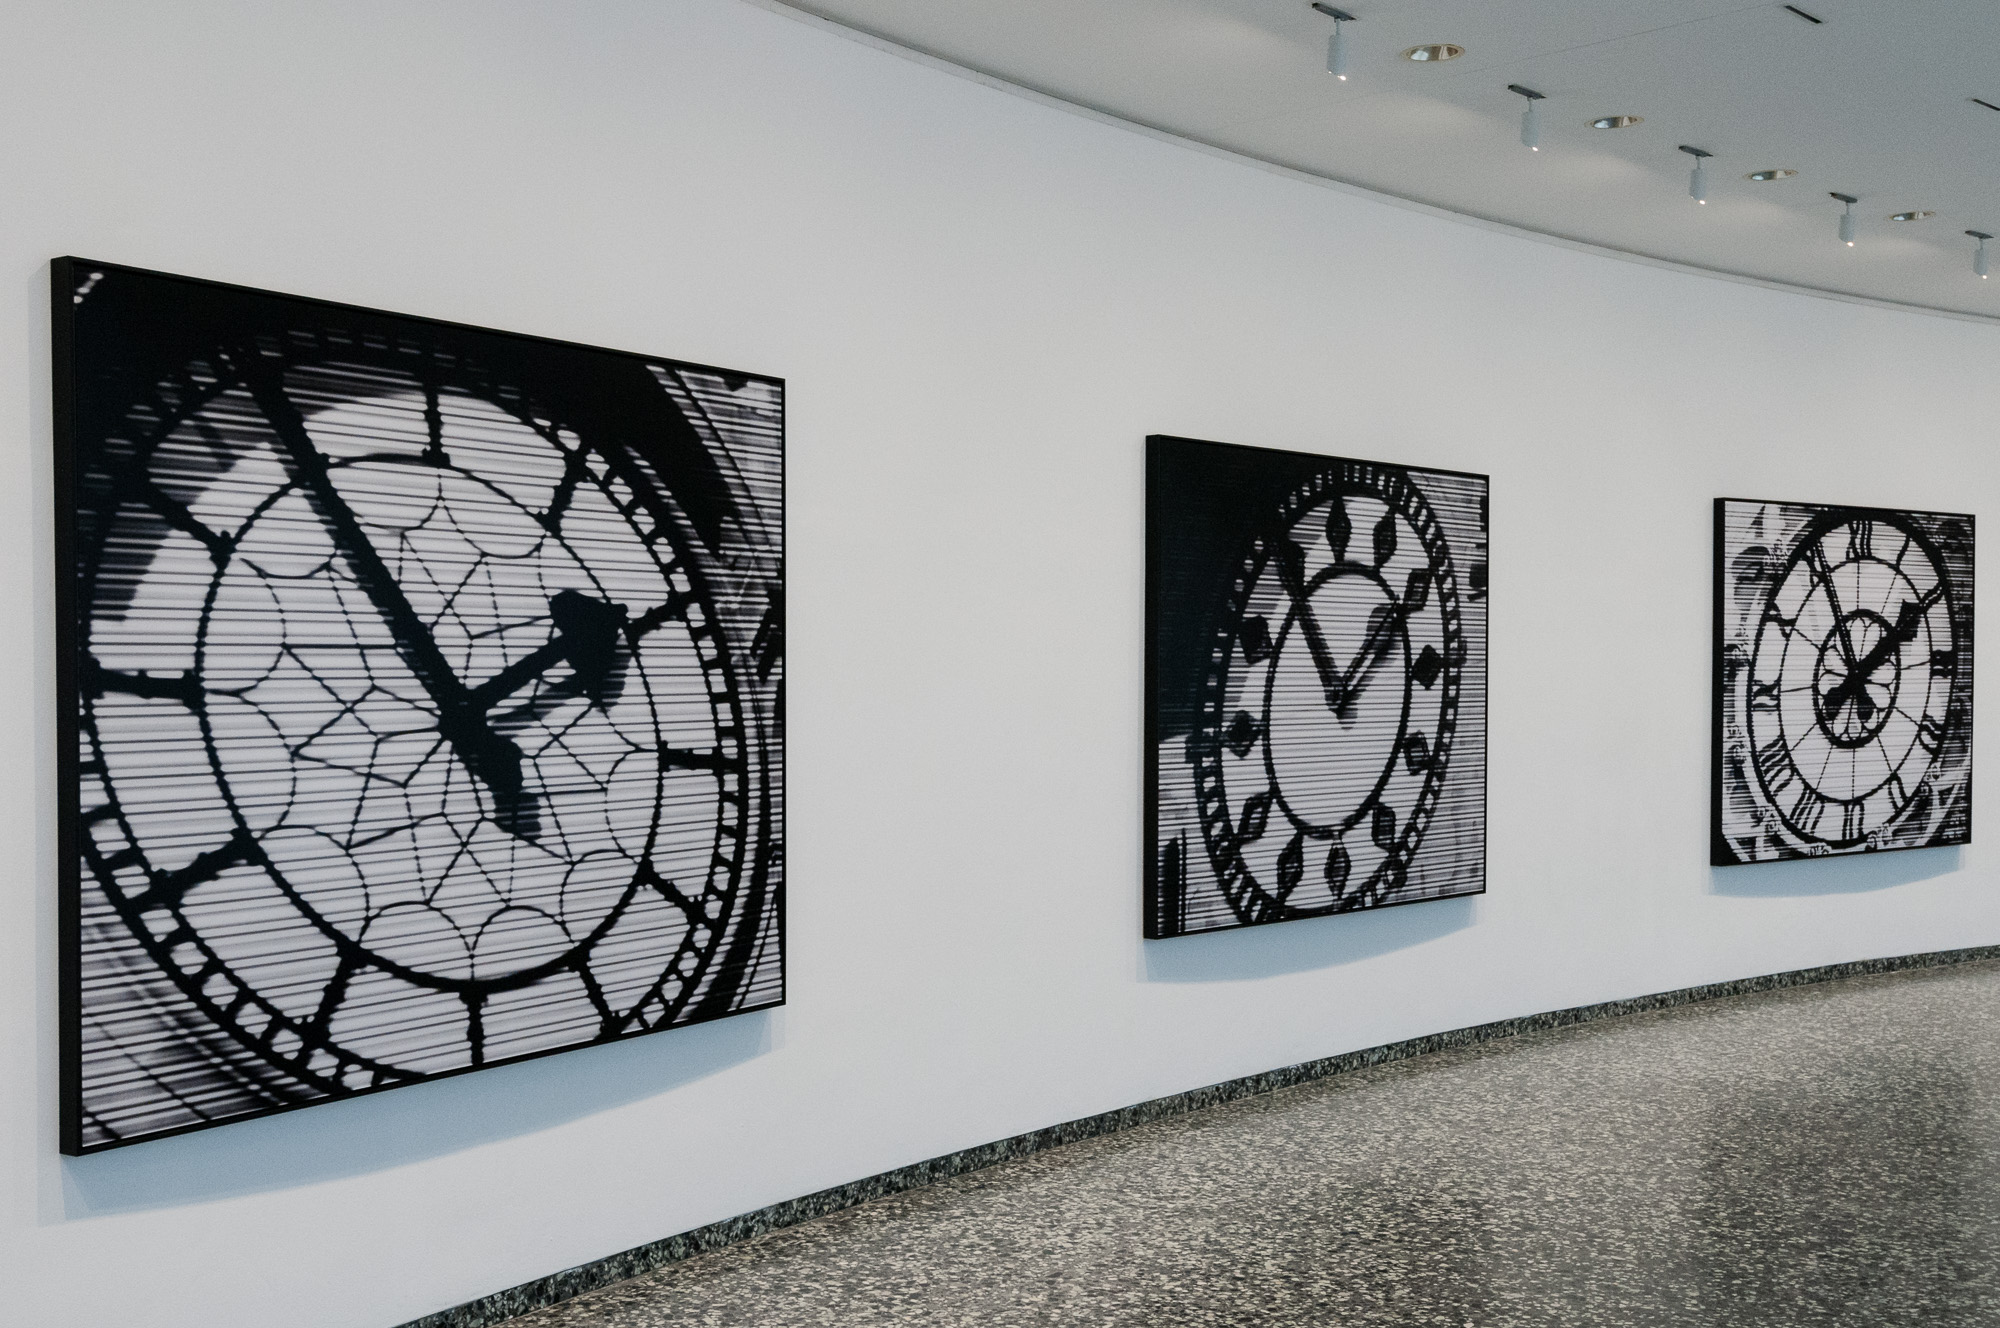 World Time Clock by Bettina Pousttchi in the Smithsonian Hirshhorn Museum